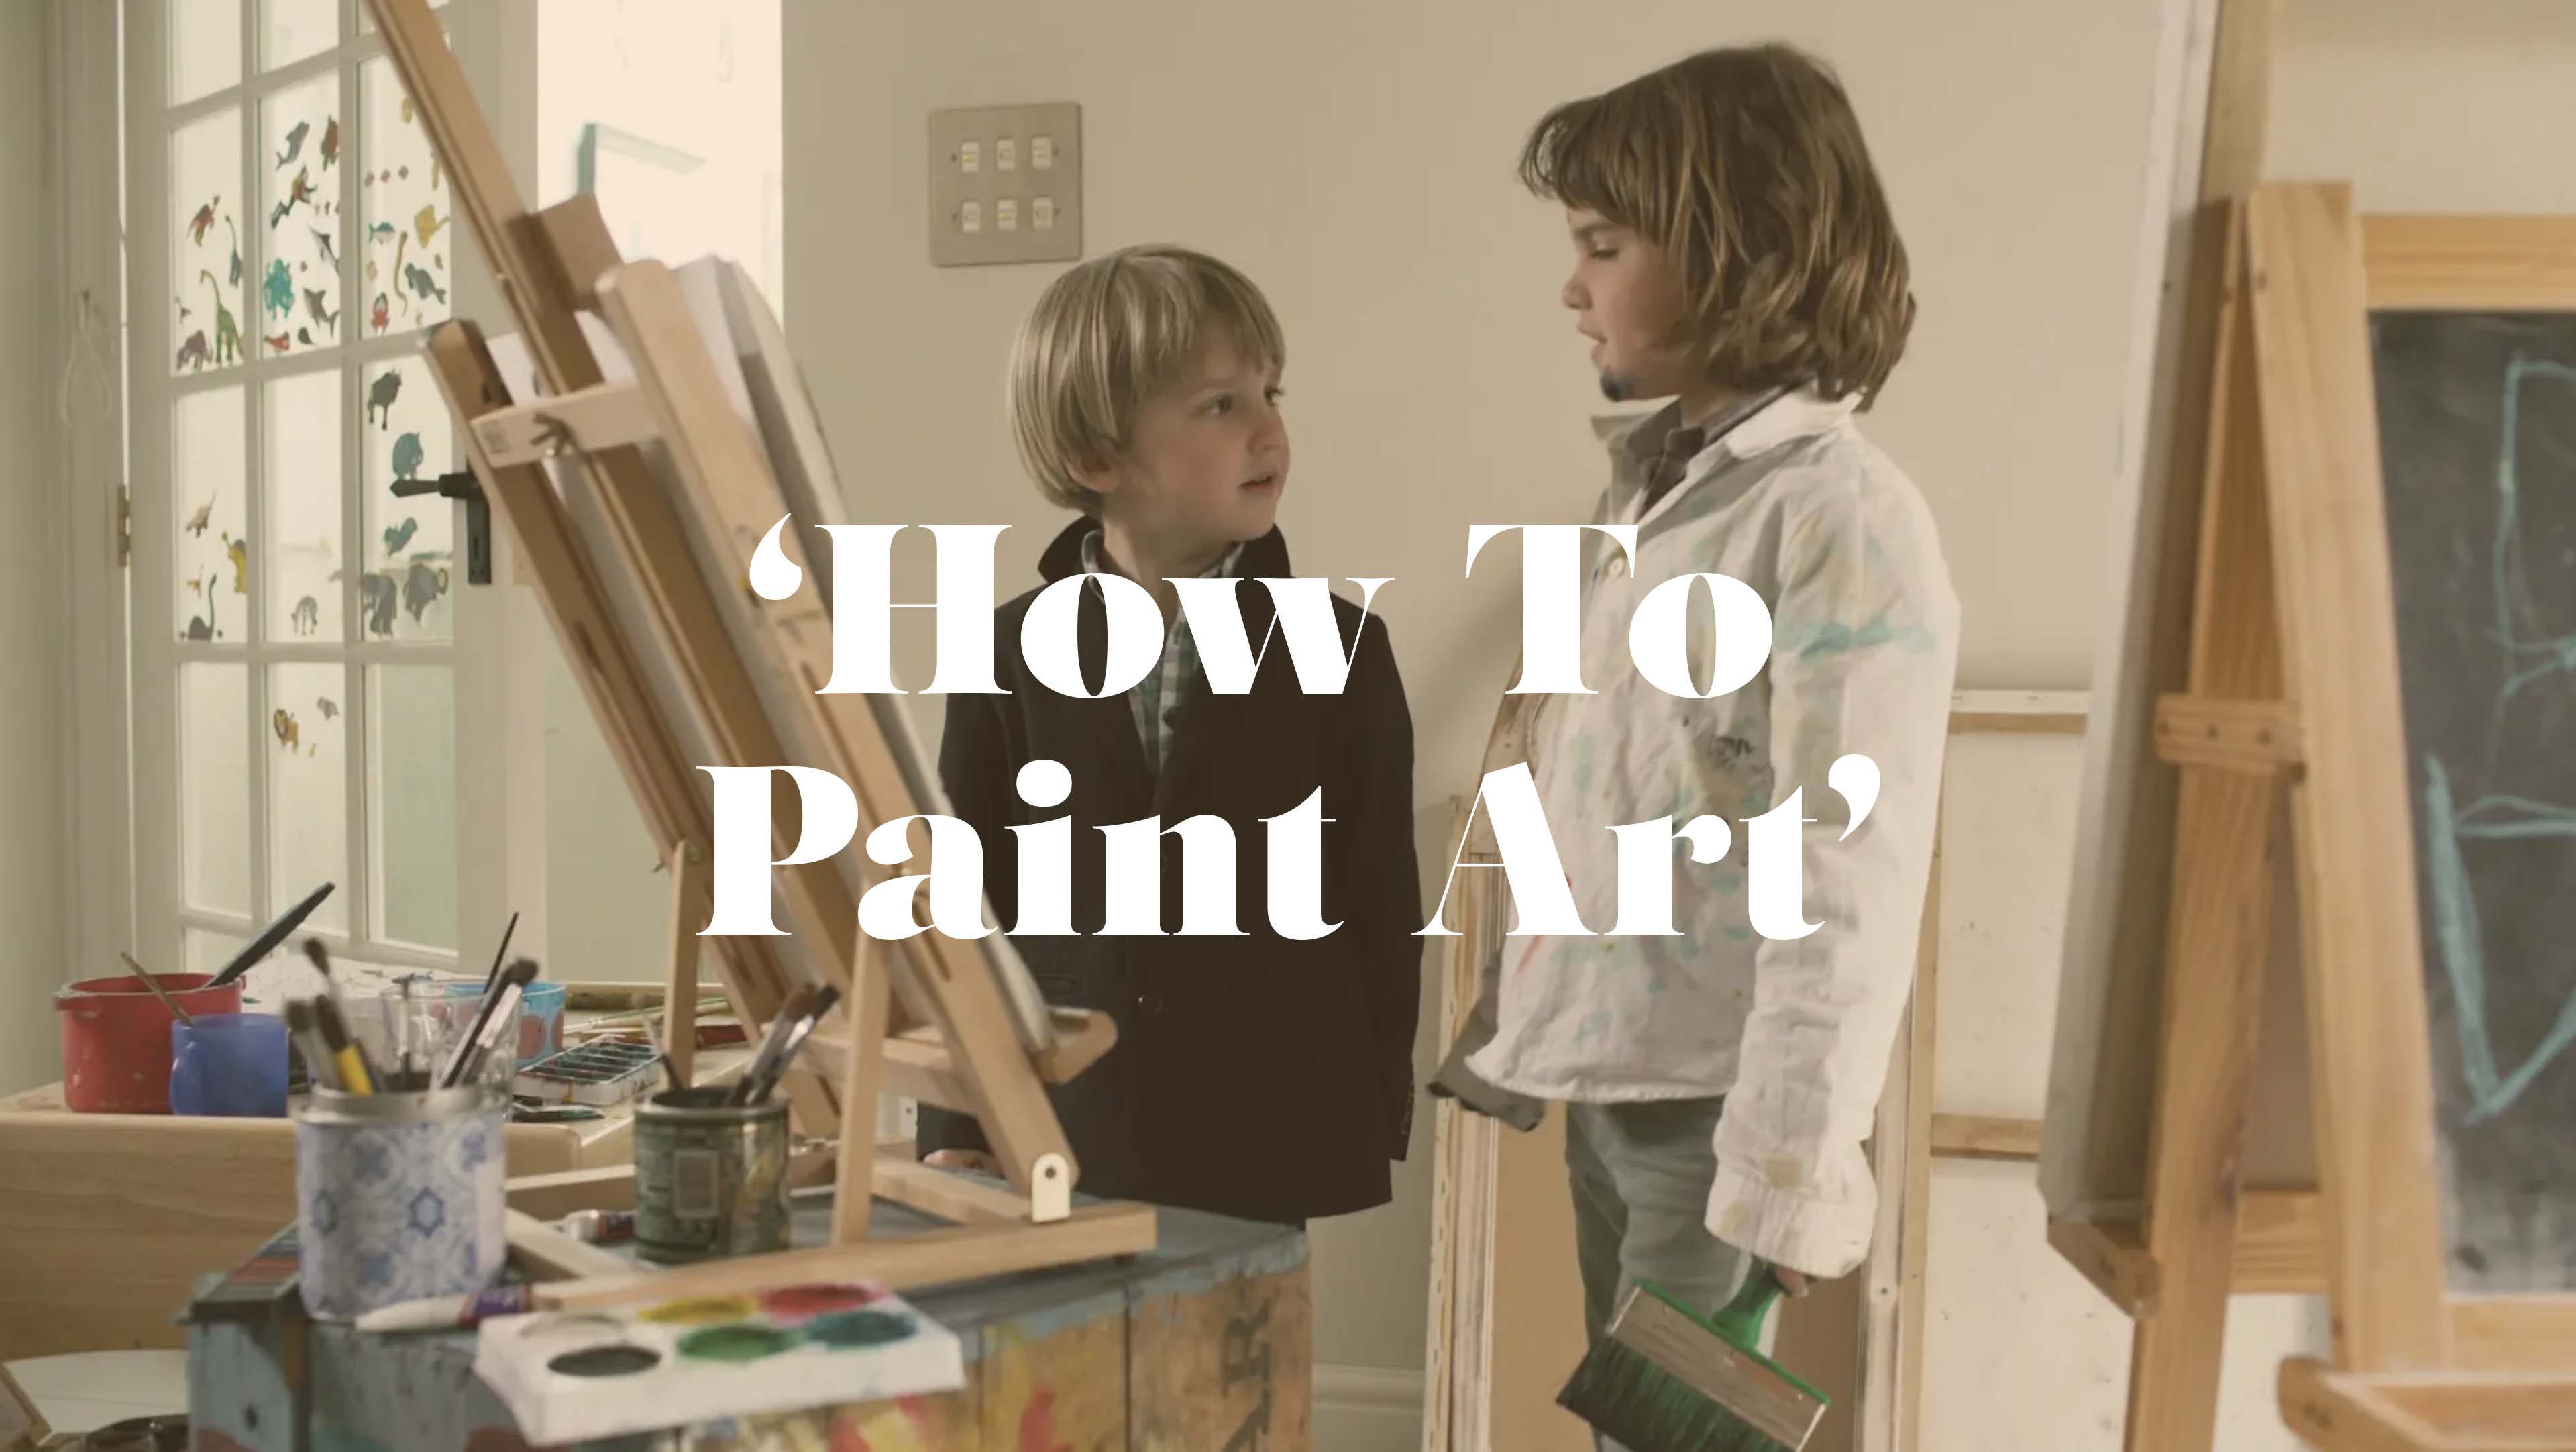 We are excited to present 'How To Paint' - the first of our 'How To' series with the Laroche Brothers.